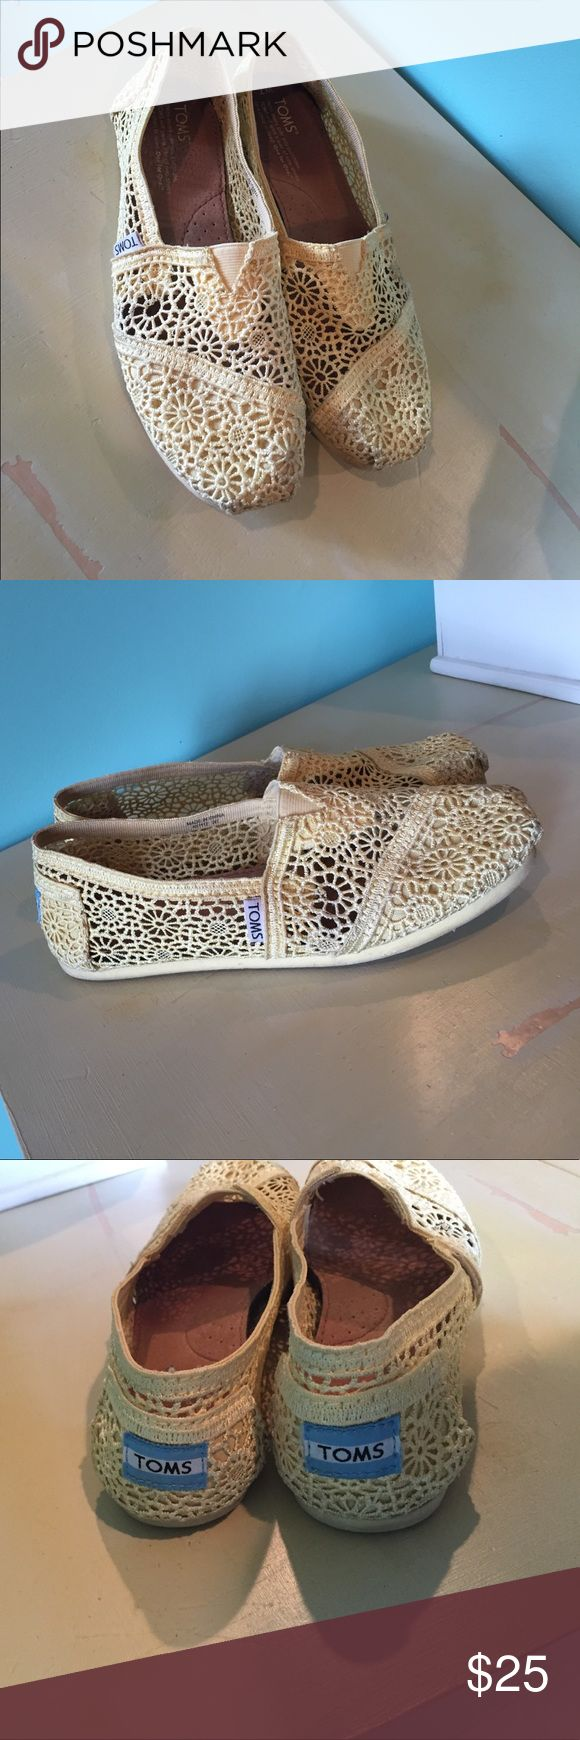 GENTLY WORN YELLOW CROCHET TOMS Gently worn, good condition. Yellow crochet(flowers) toms. Super comfortable. Cute for spring & summer TOMS Shoes Flats & Loafers